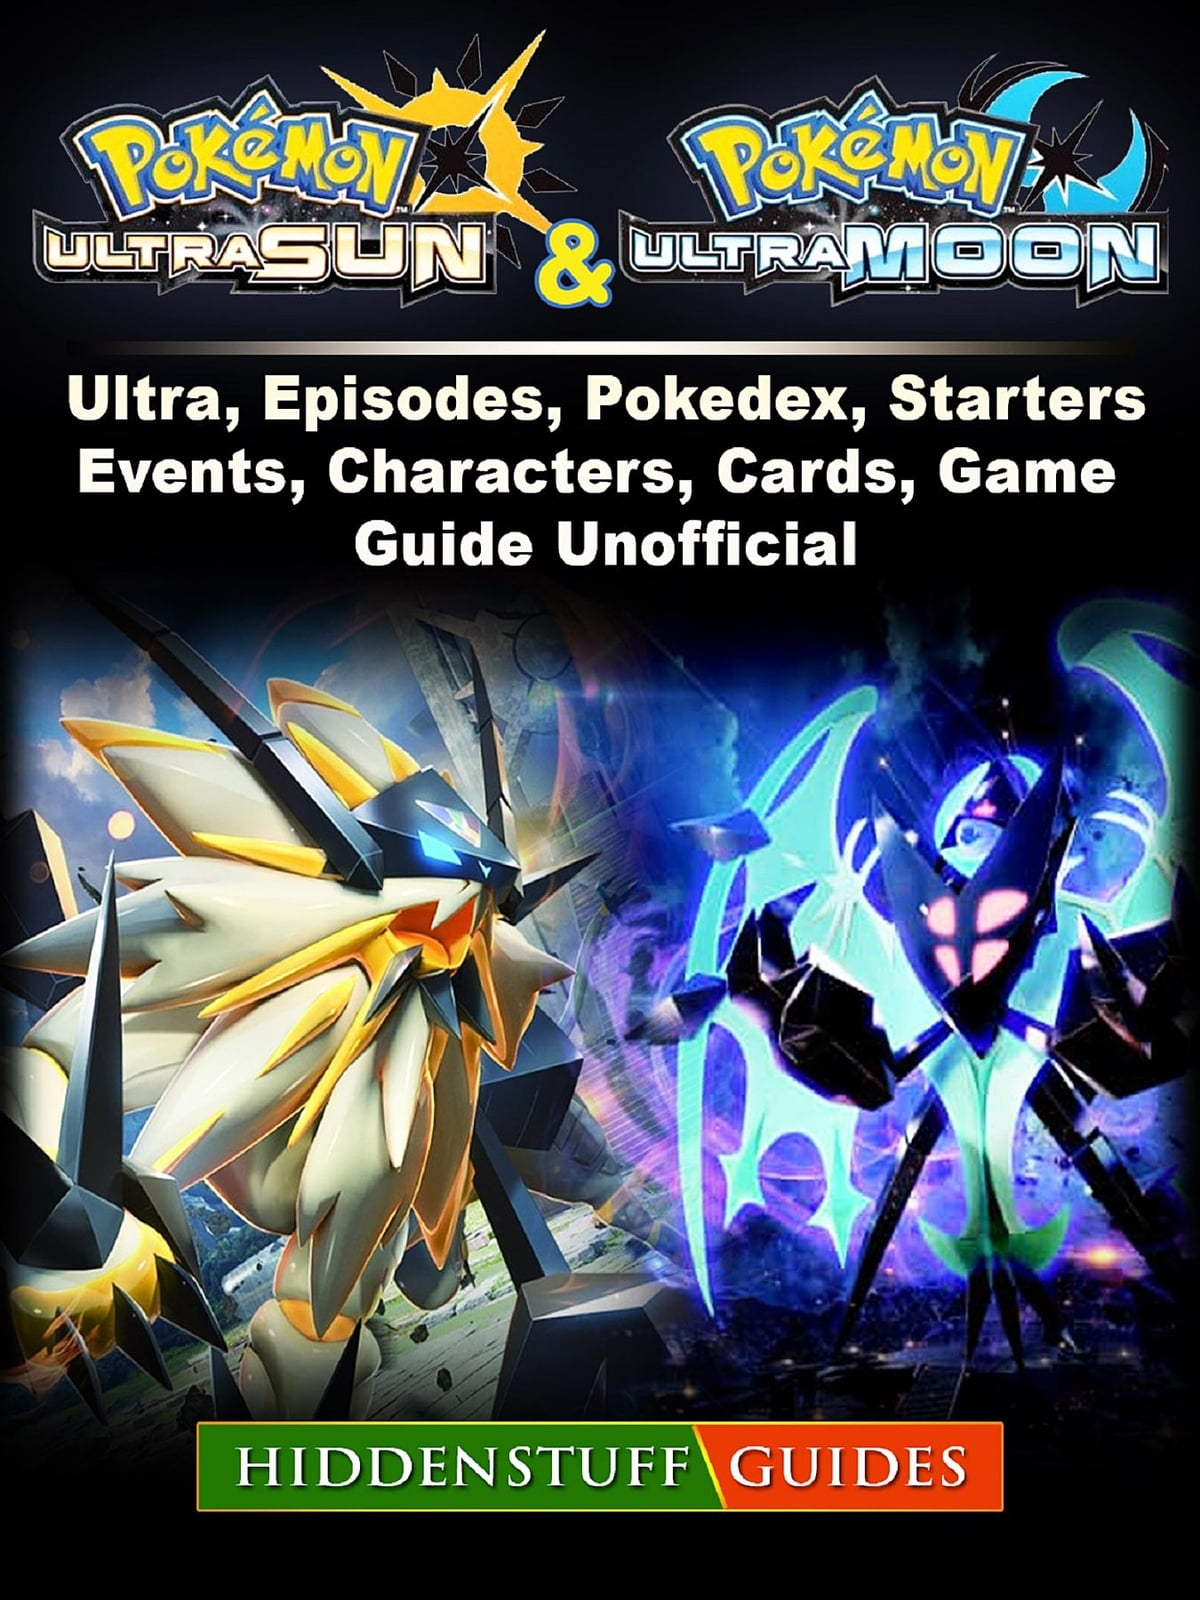 Pokemon Ultra Sun and Ultra Moon, Ultra, Episodes, Pokedex, Starters,  Events, Characters, Cards, Game Guide Unofficial ebook by Hiddenstuff  Guides -